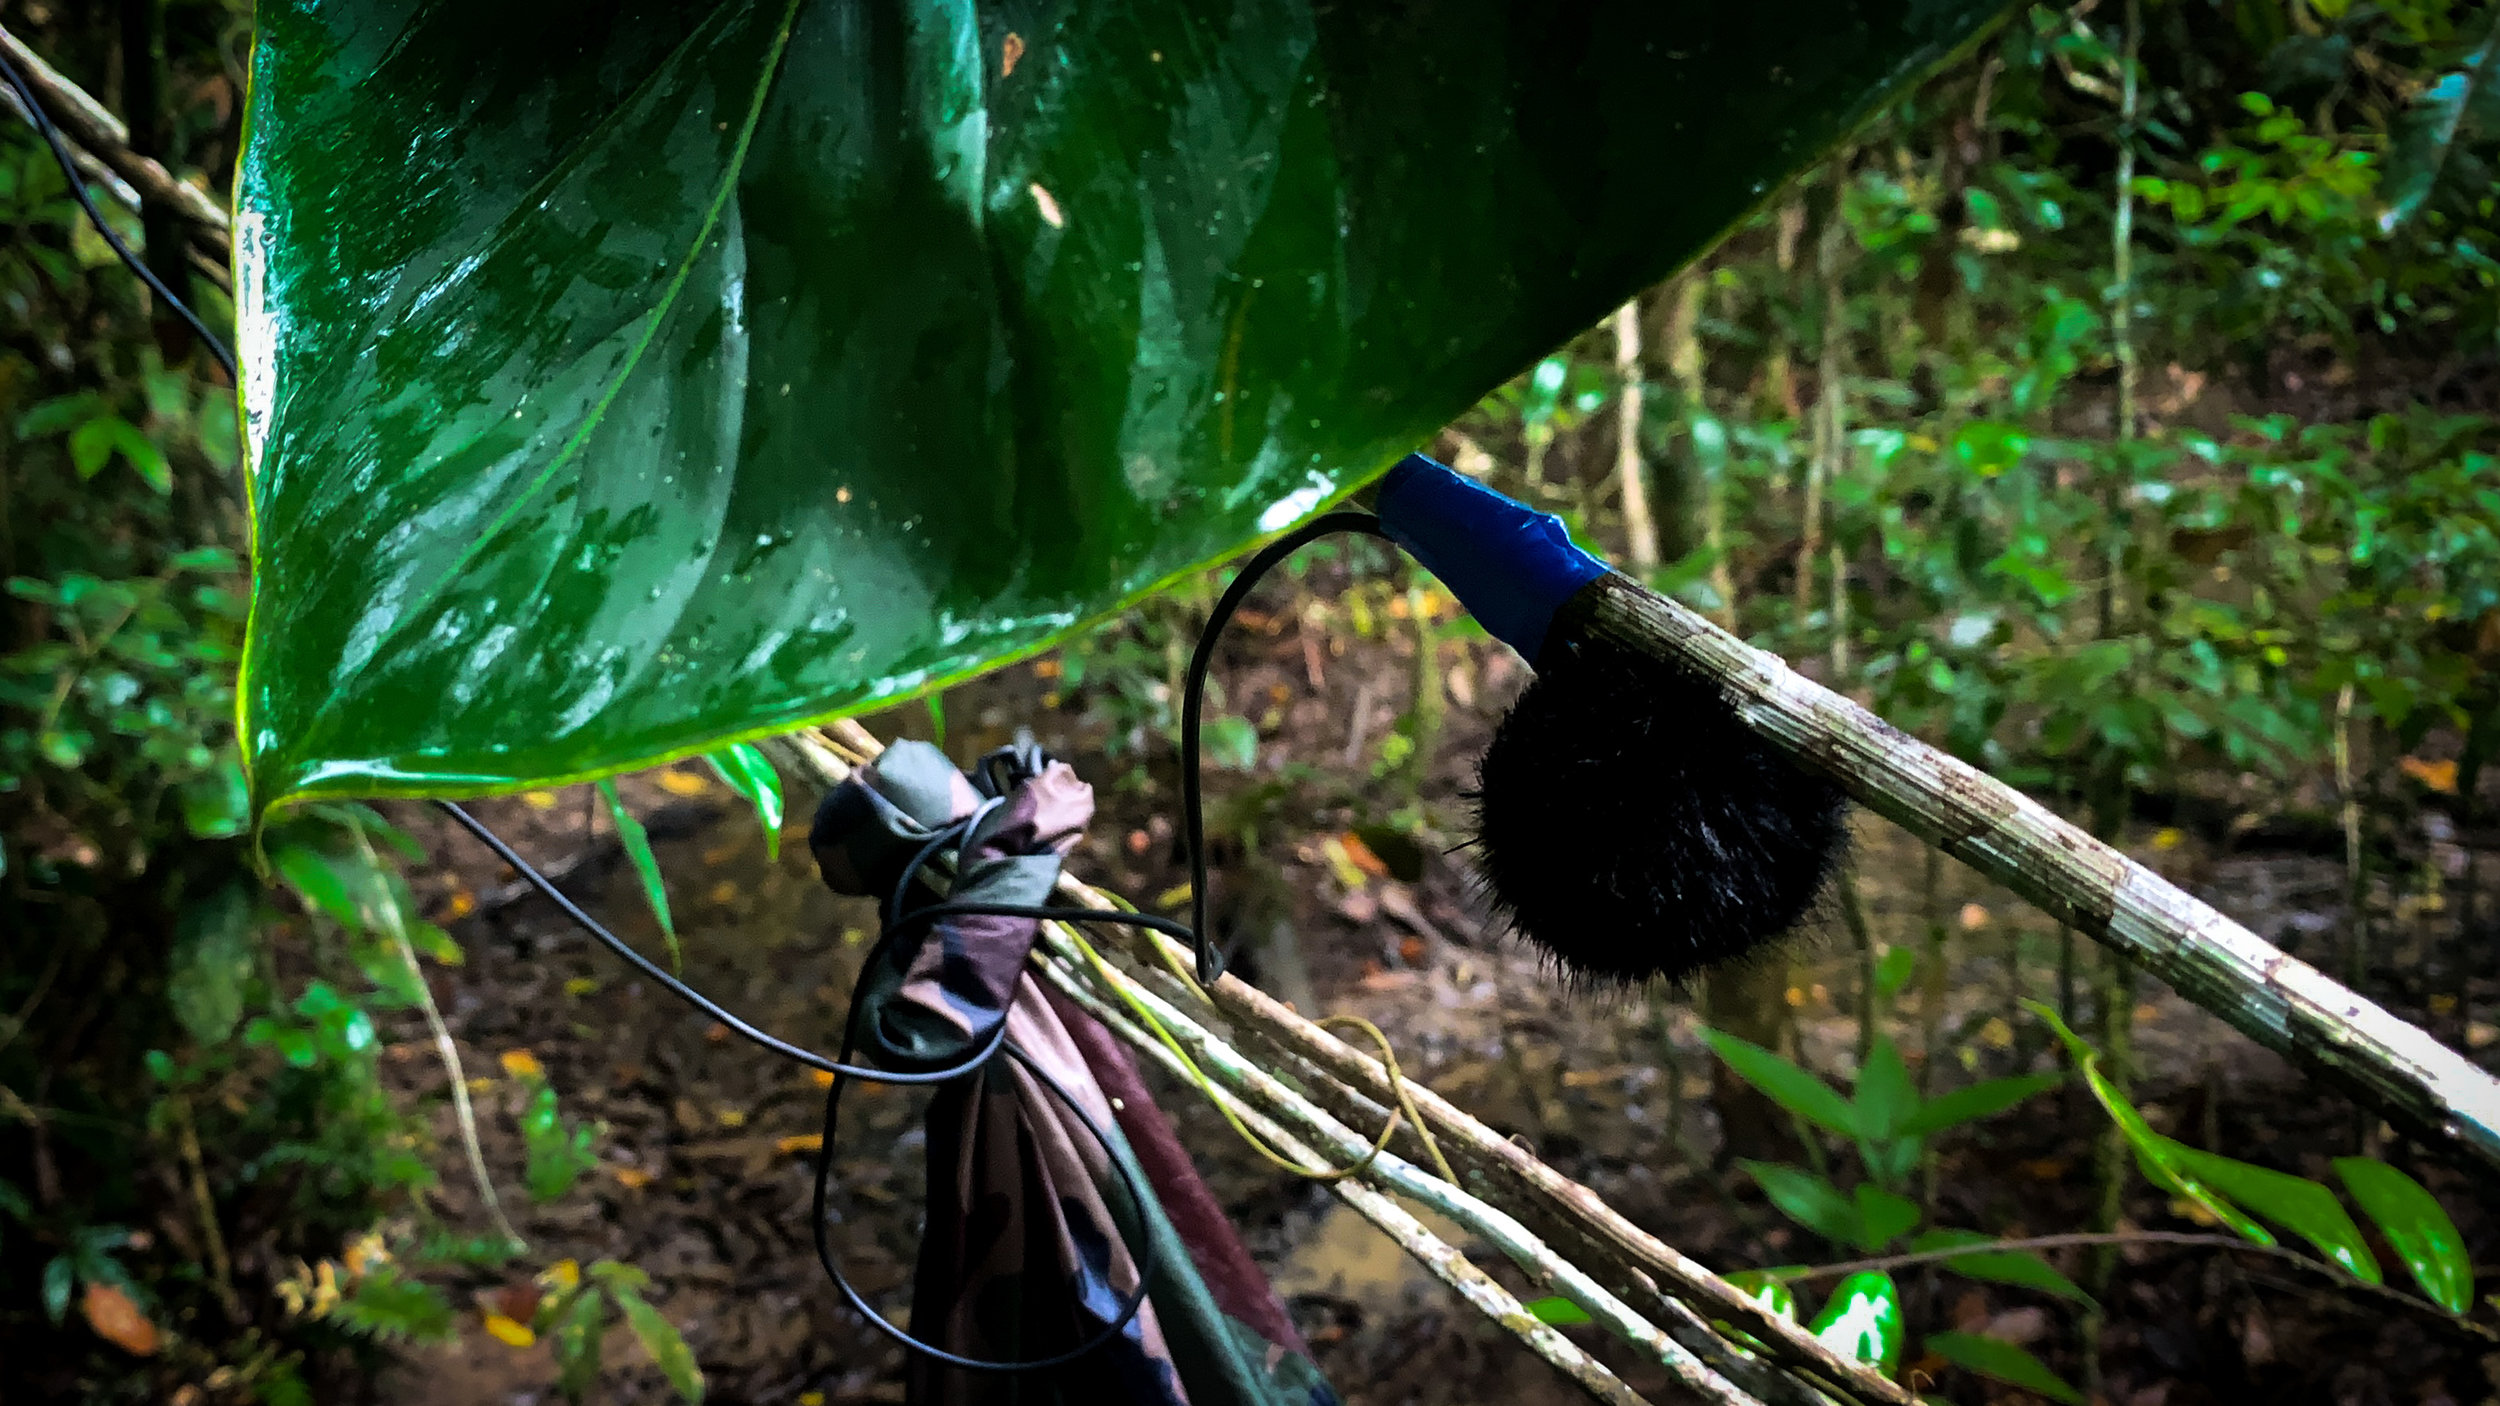 Makeshift umbrella for microphones in the Amazon